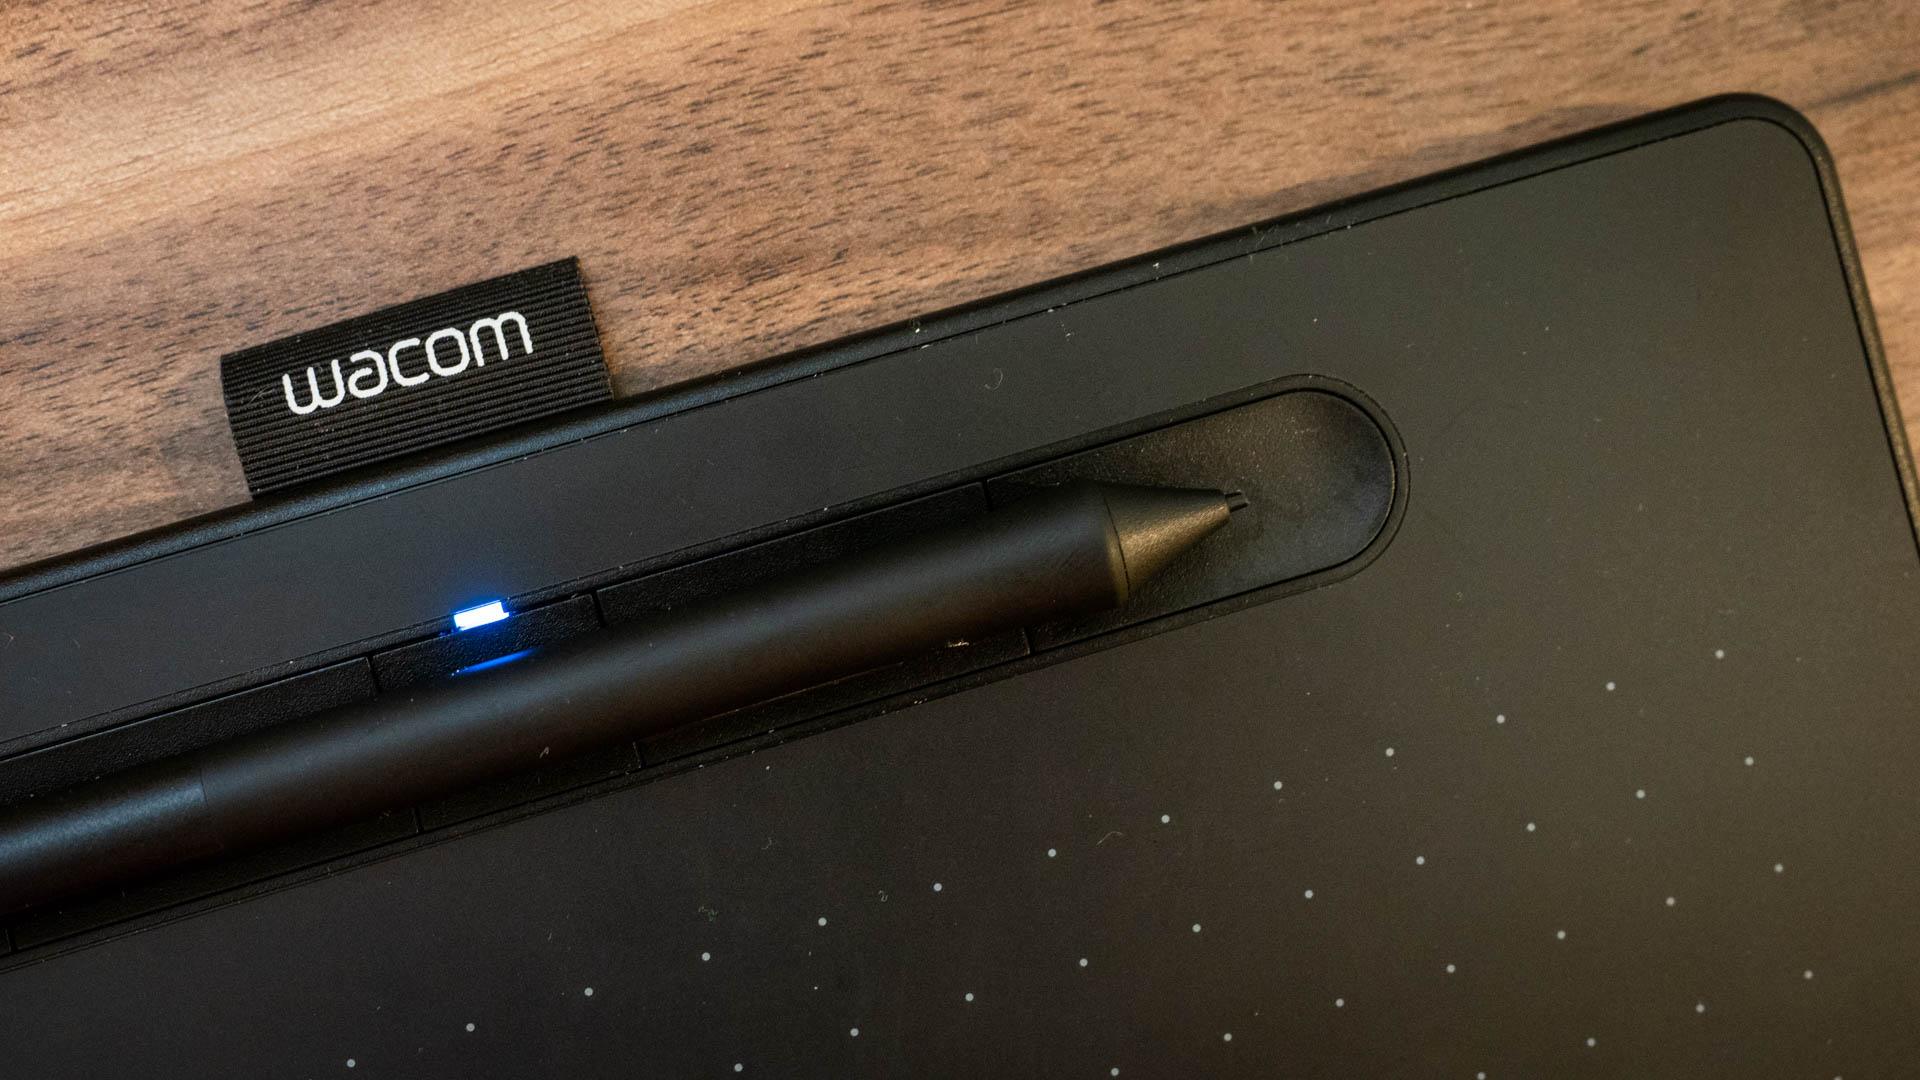 Wacom Intuos Pen Tablet a great entry-level tablet for